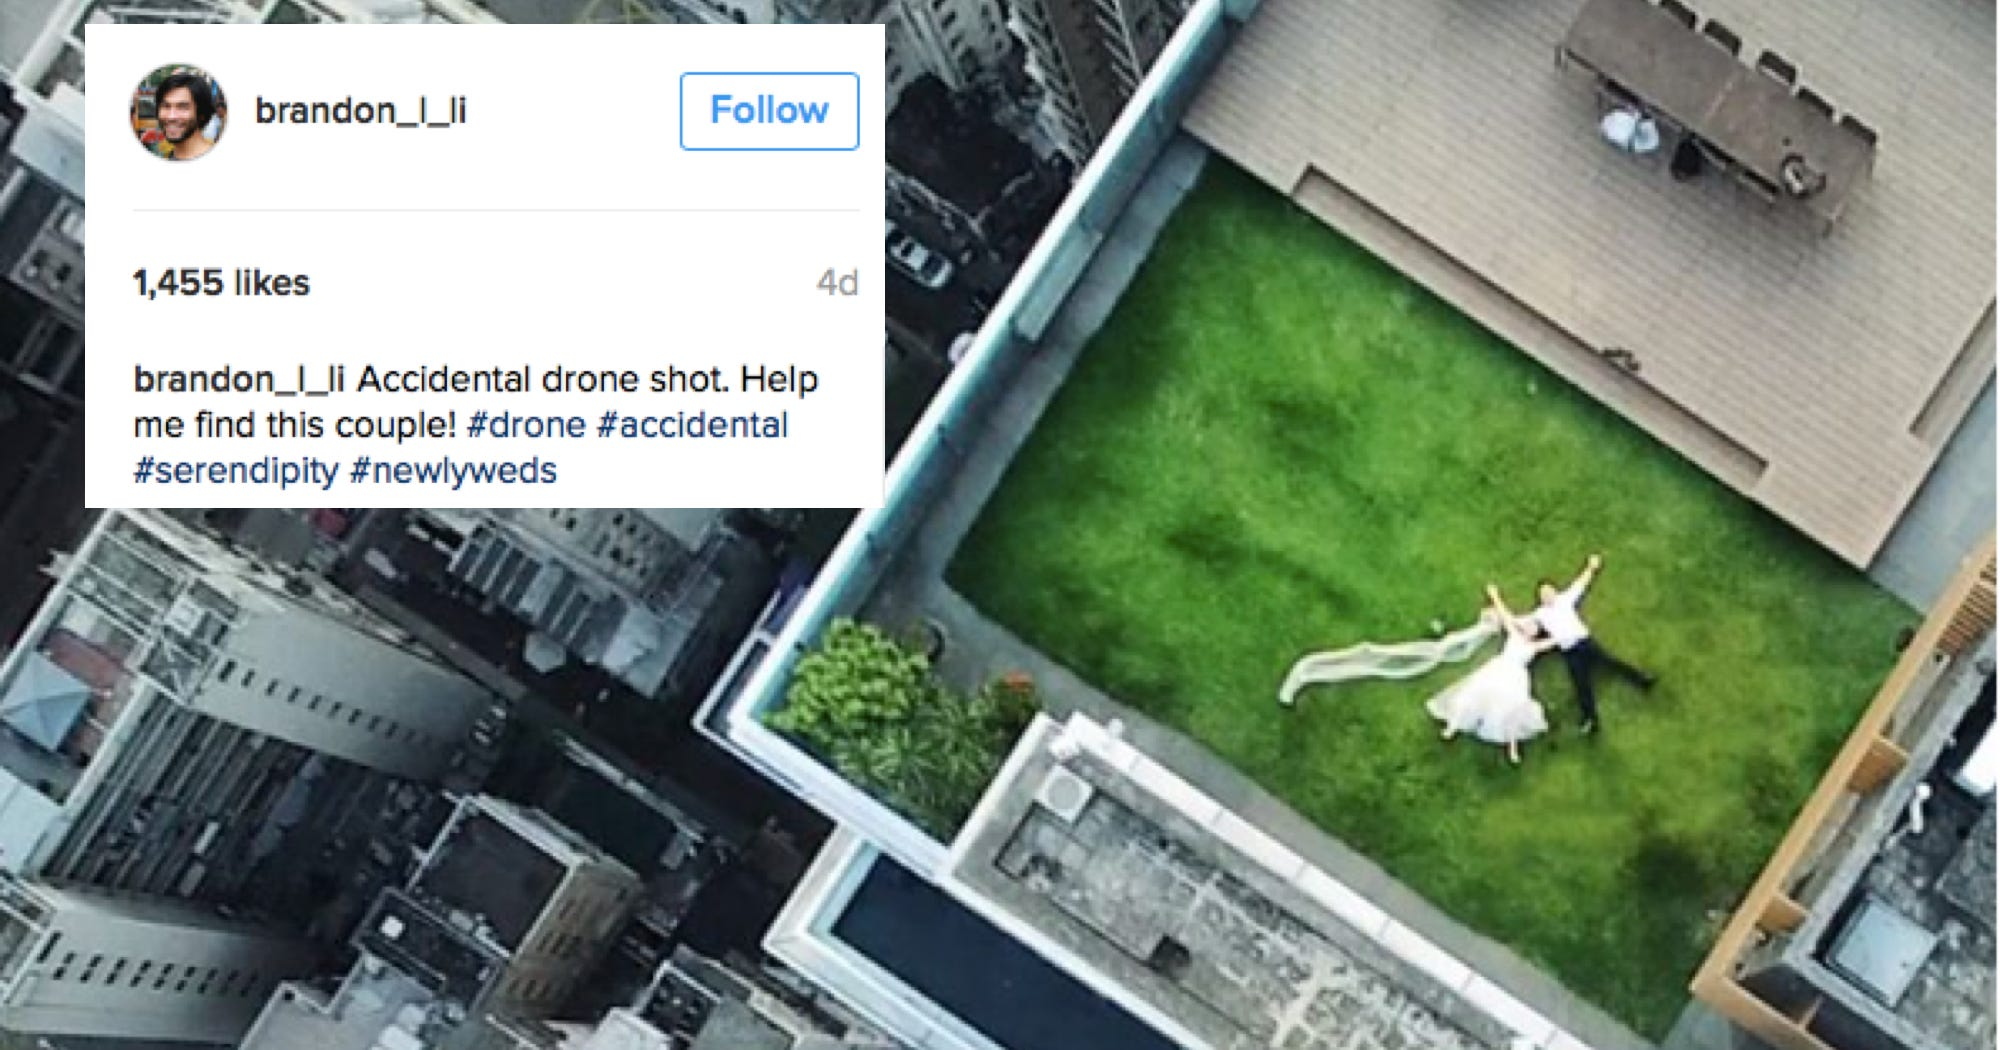 His Drone Took This Great Wedding Pic, Now He Wants To Find The Couple